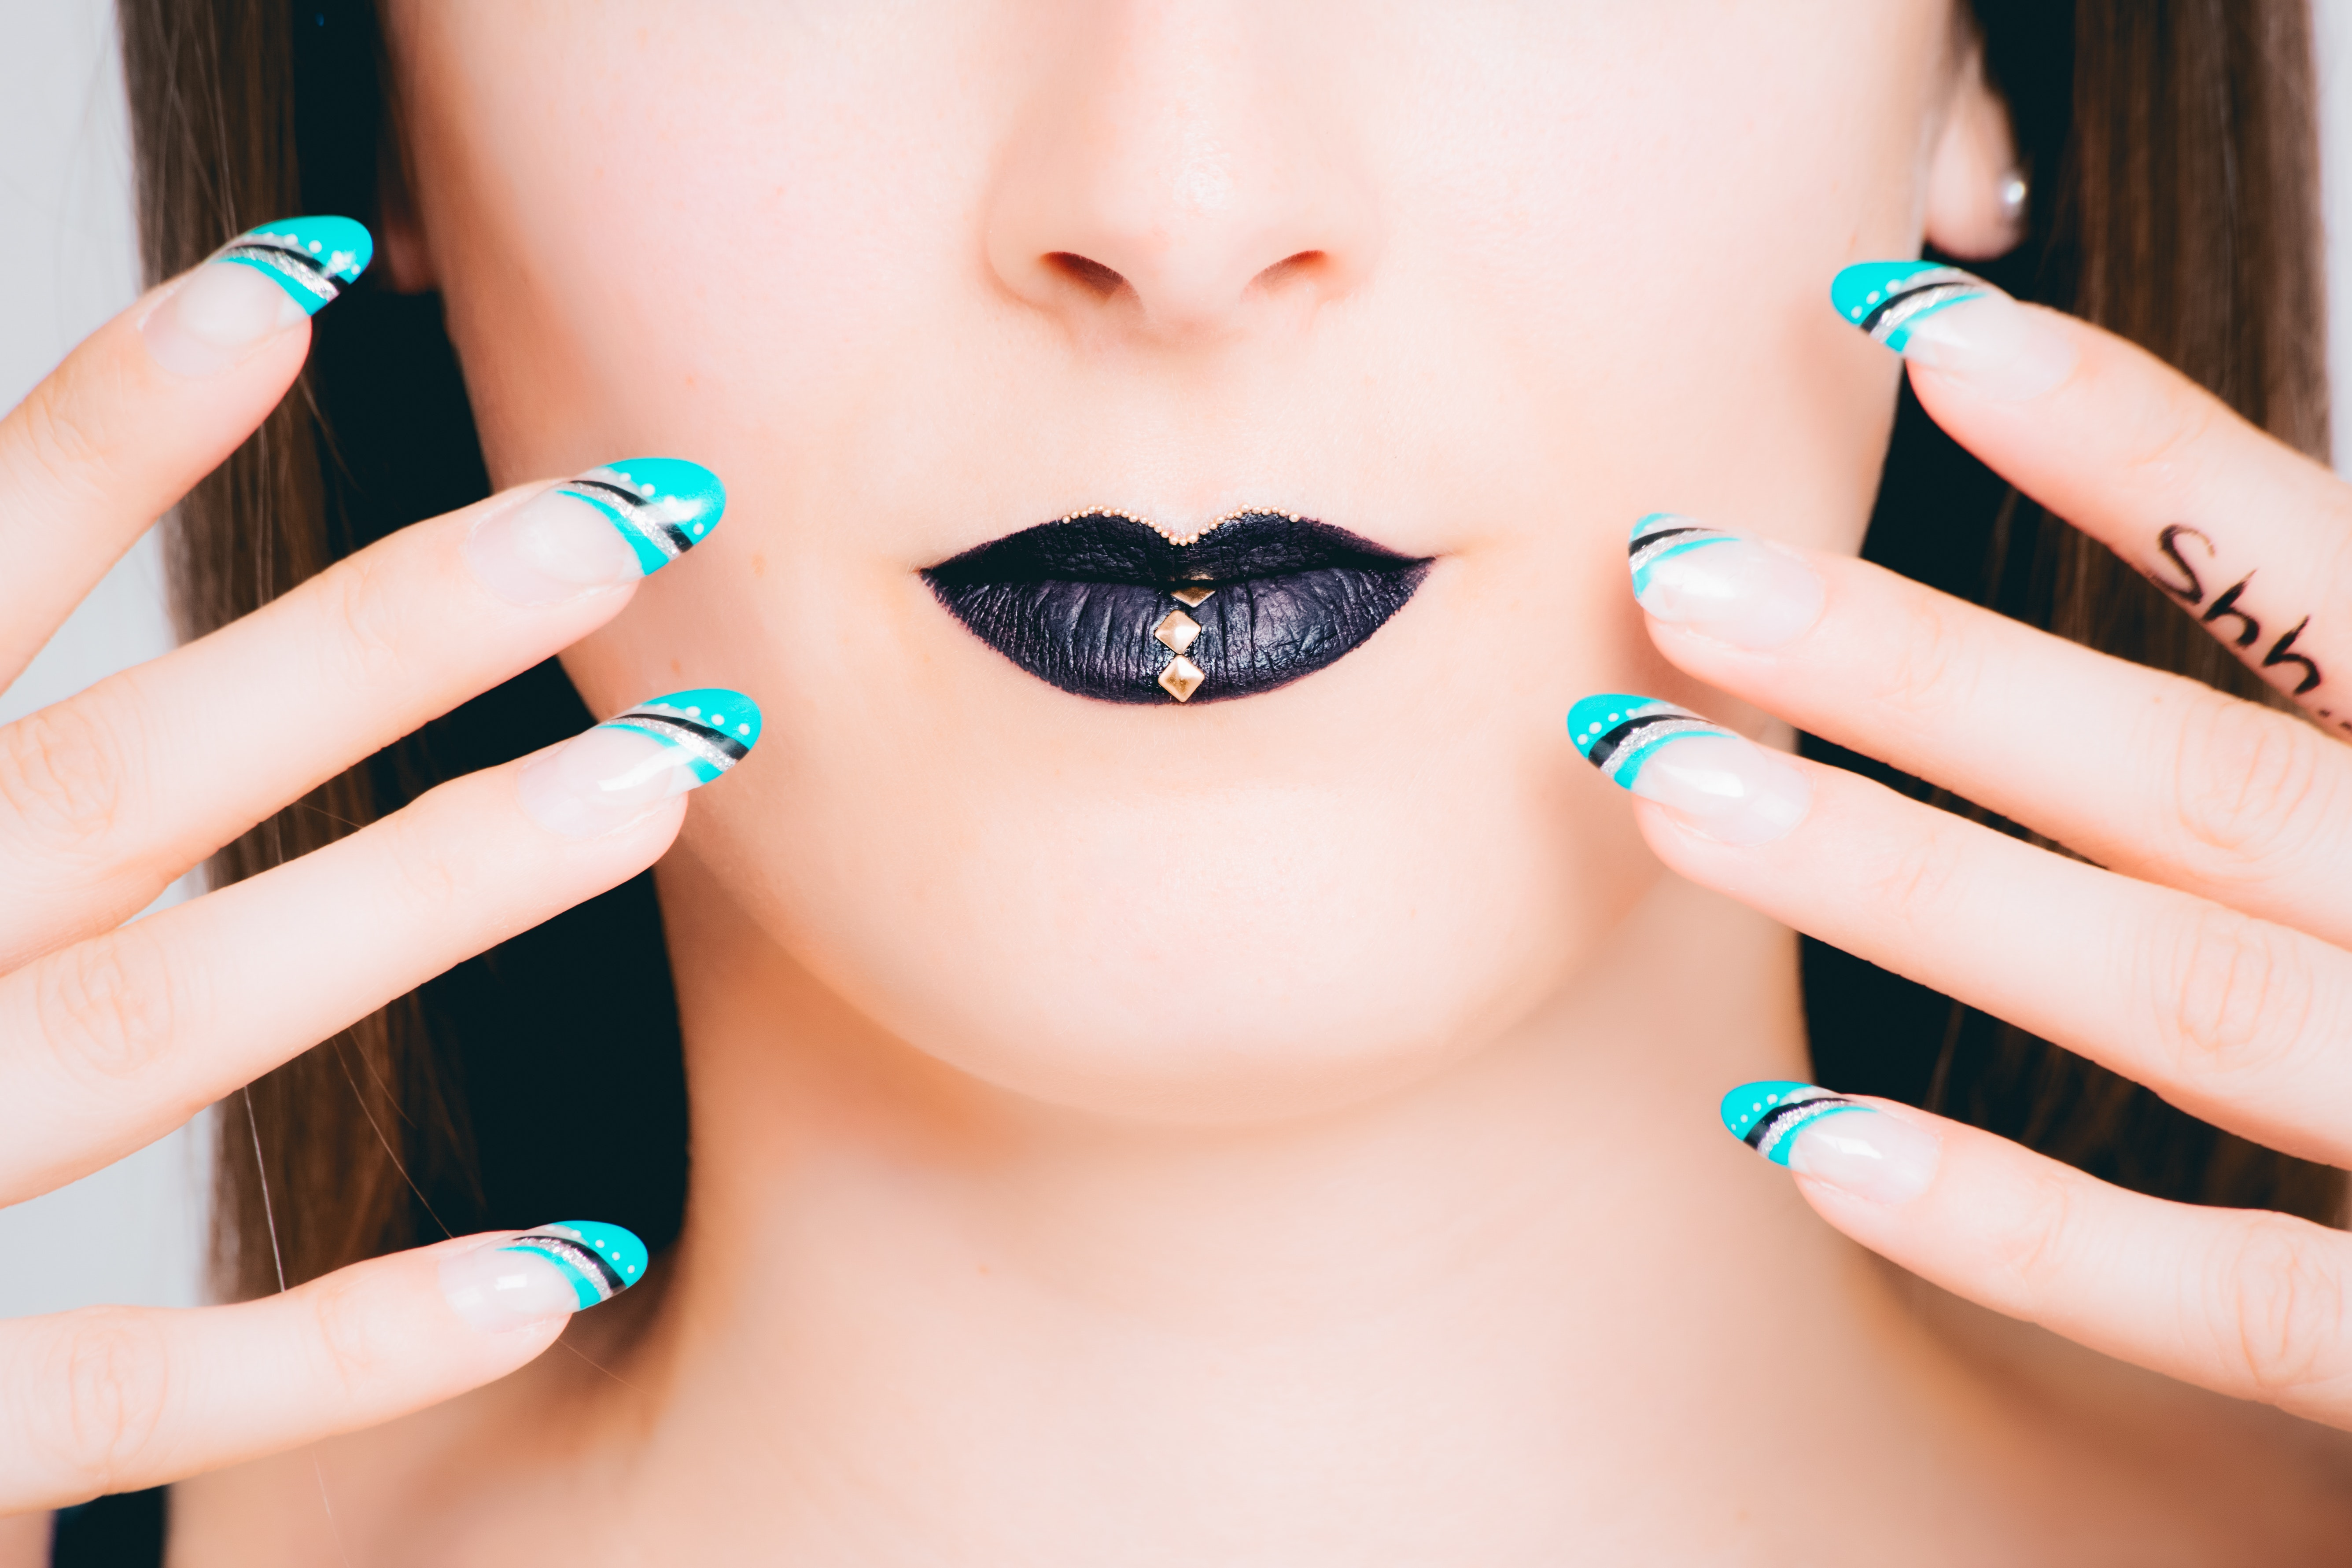 teal black and white nail art free stock photo. Black Bedroom Furniture Sets. Home Design Ideas